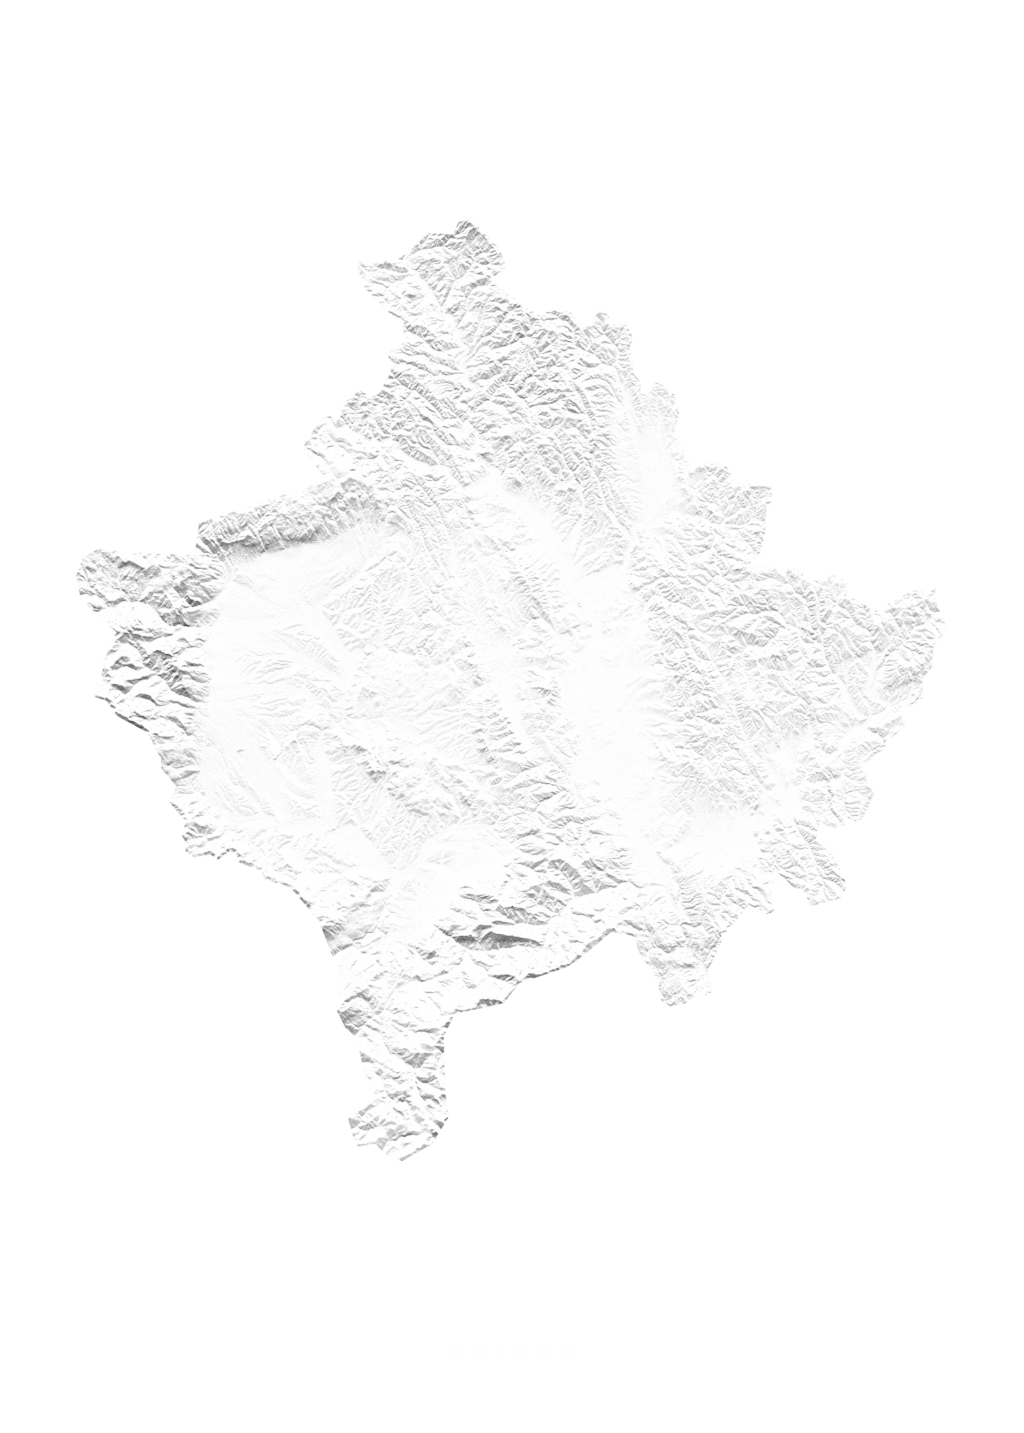 Kosovo wall map